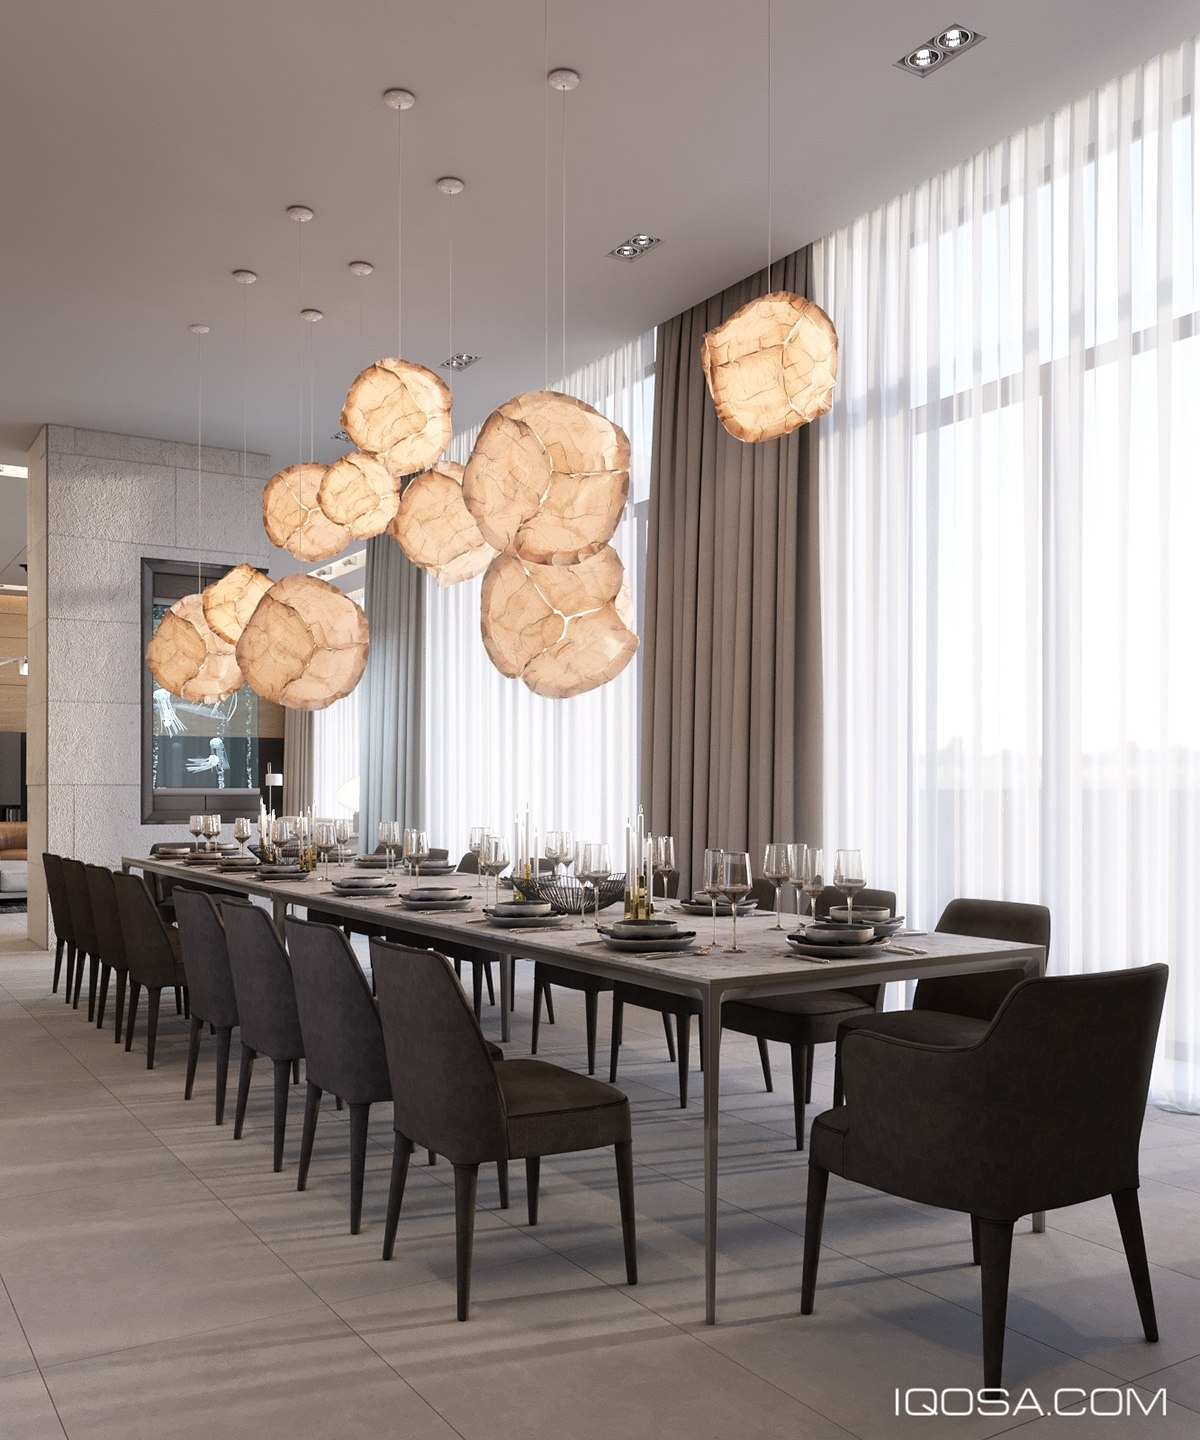 Cloud Pendant Lights Over Dining Table - A sophisticated home with natural themes outside of kiev